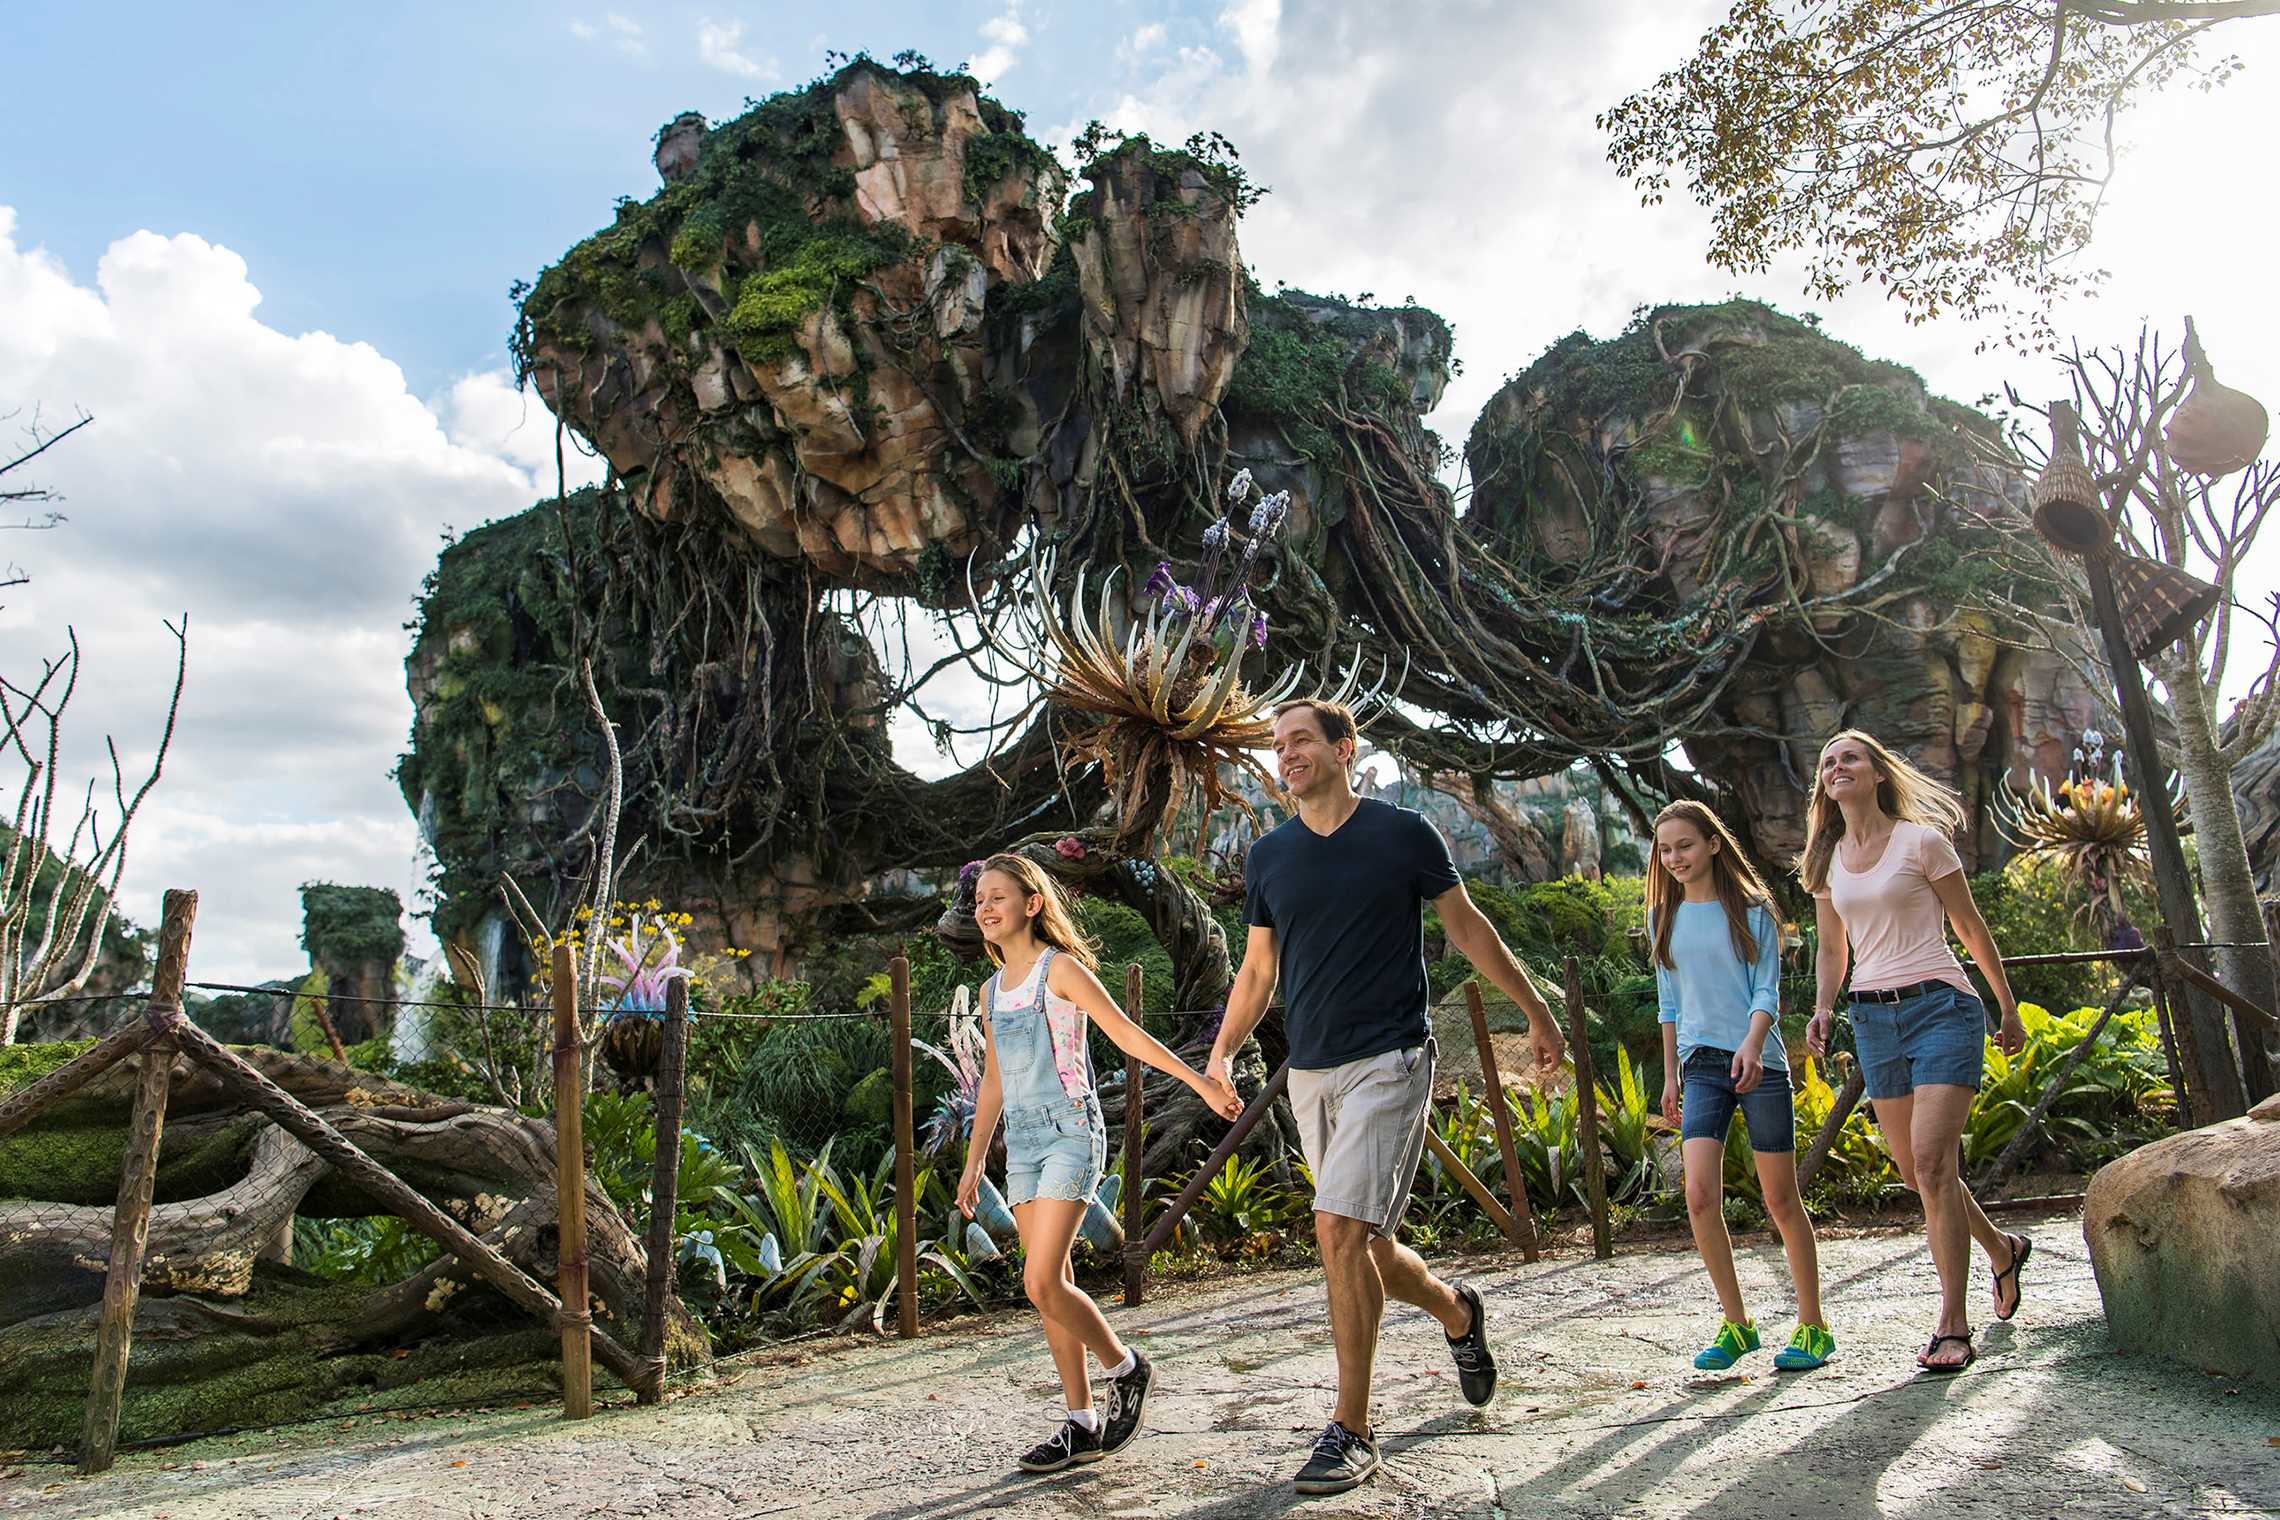 Inside Pandora - The World of Avatar. Copyright 2017 The Walt Disney Company